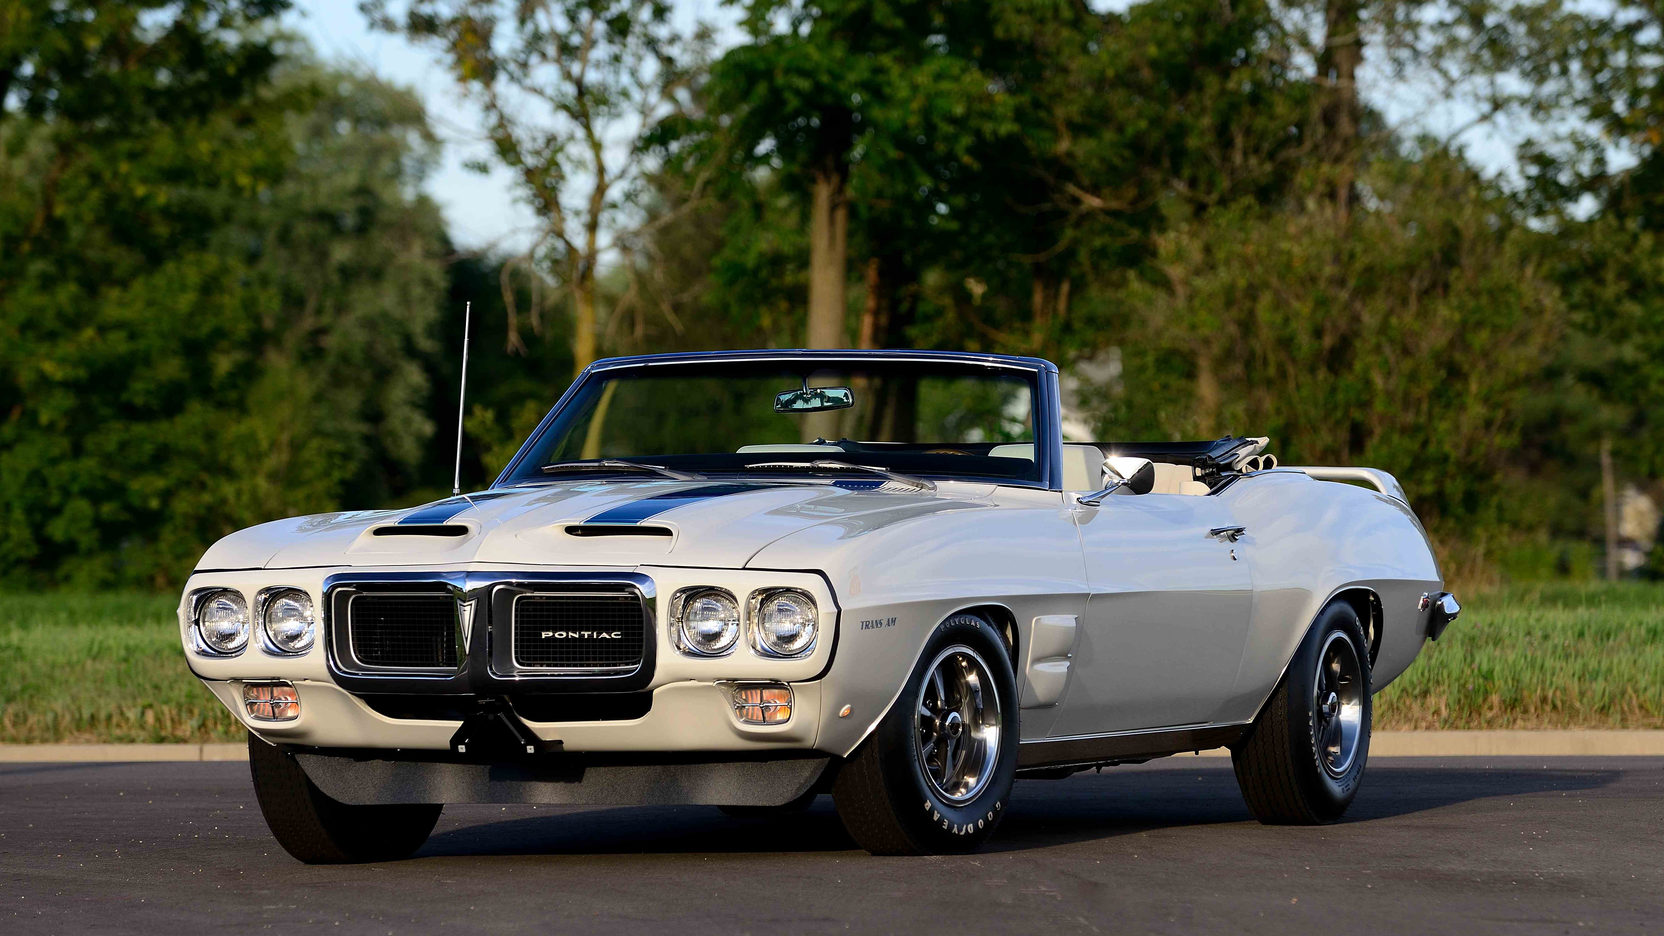 Pontiac Firebird Trans-Am 1969 Convertible